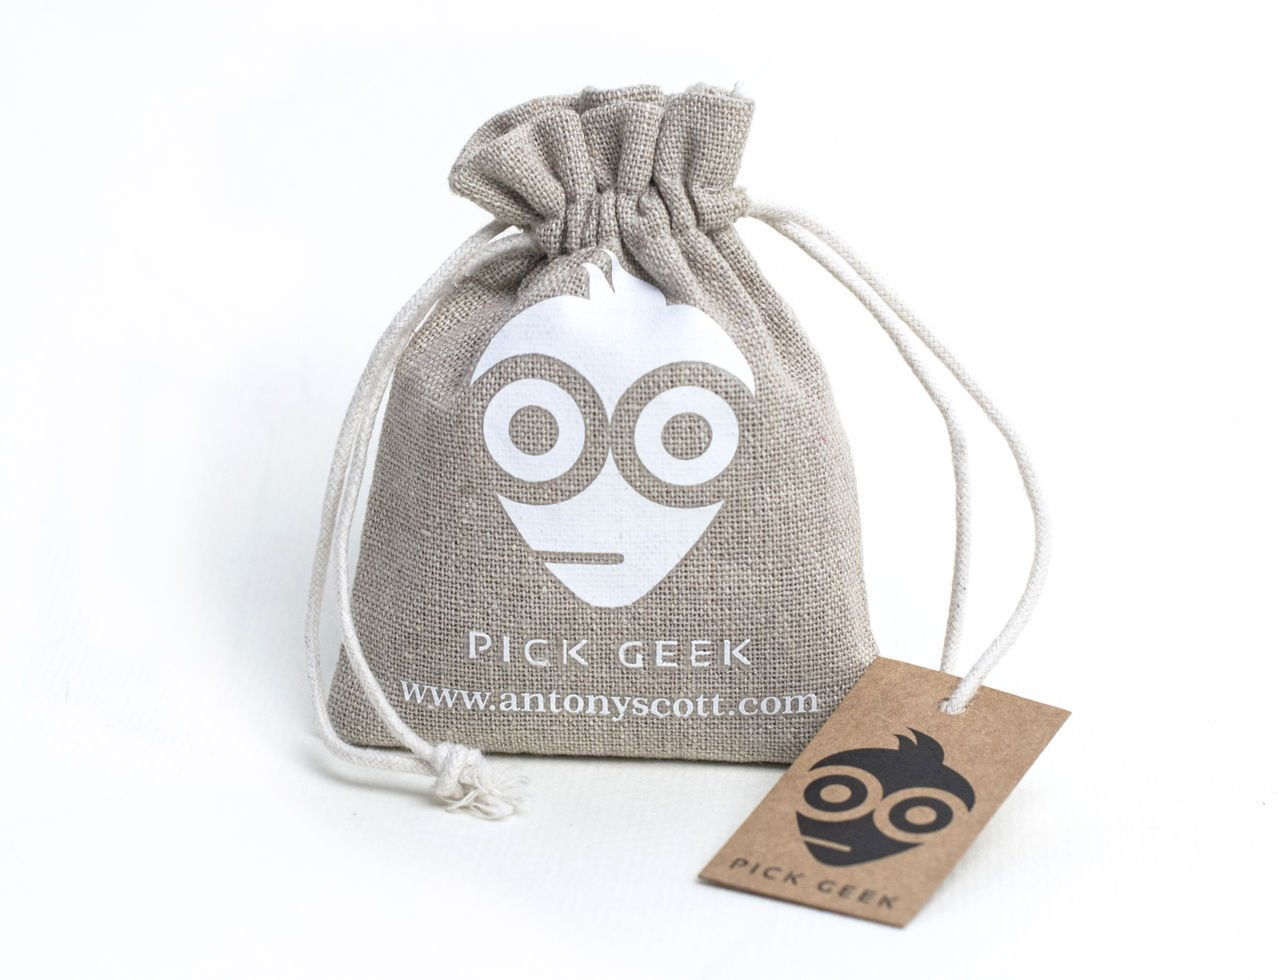 Pick Geek Guitar Picks, 101 Cool Custom Picks (Plectrums) For Your Electric, Acoustic, or Bass Guitar - Medium, Heavy, Thin, (Light) - Gifted in a Unique Pick Holder Bag - Keeping Picks together - A Perfect Gift - Enhance Your Pick Collection Now Antony Sc